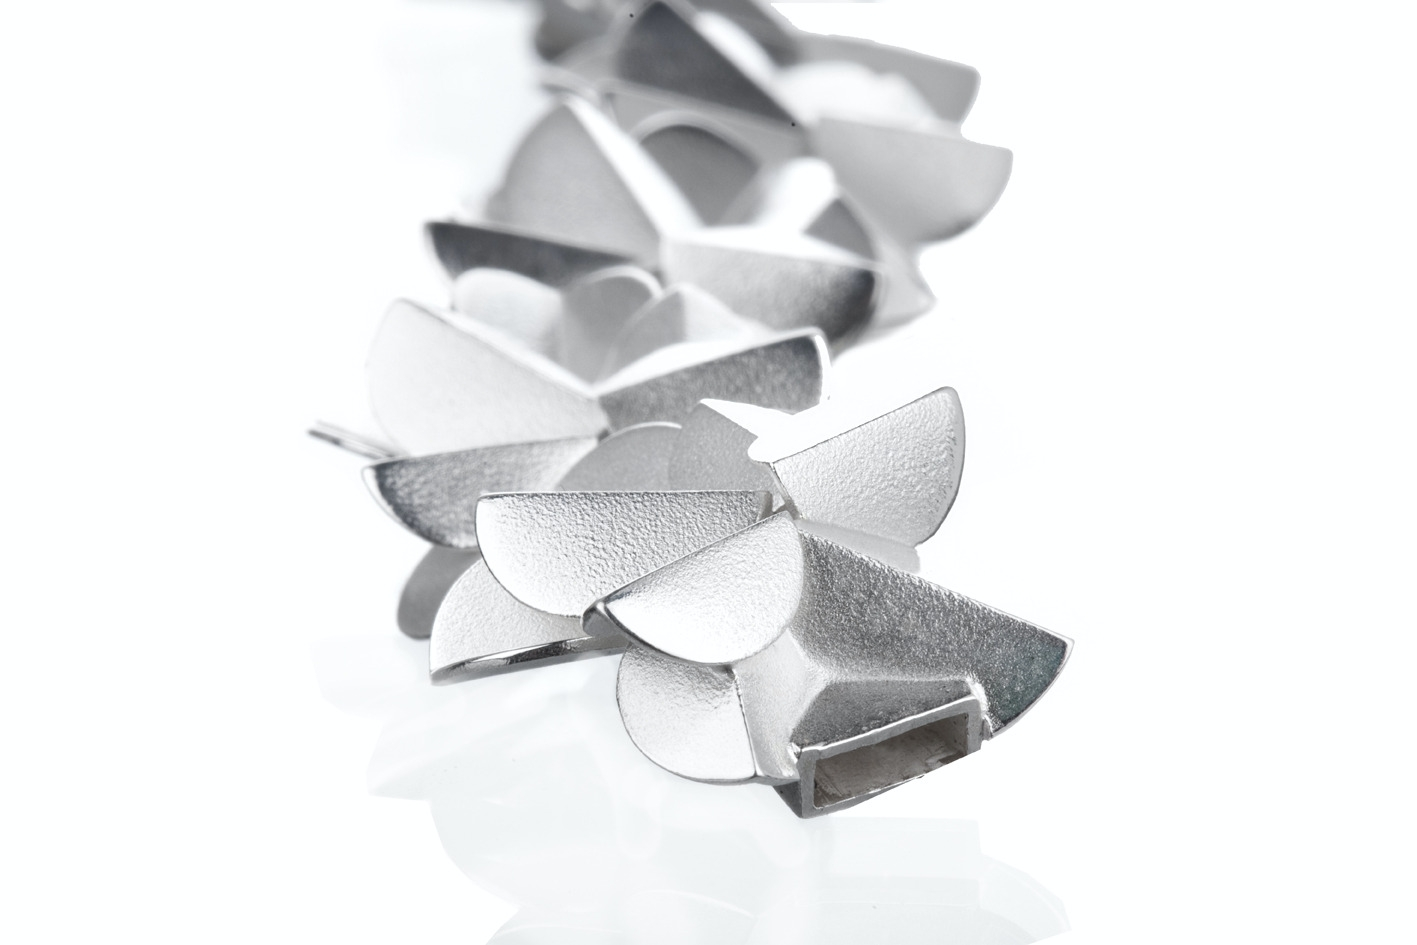 karakoram architectural earing with folding silver designs overlapping eachother. design by jewellery designer Kaja Gjedebo